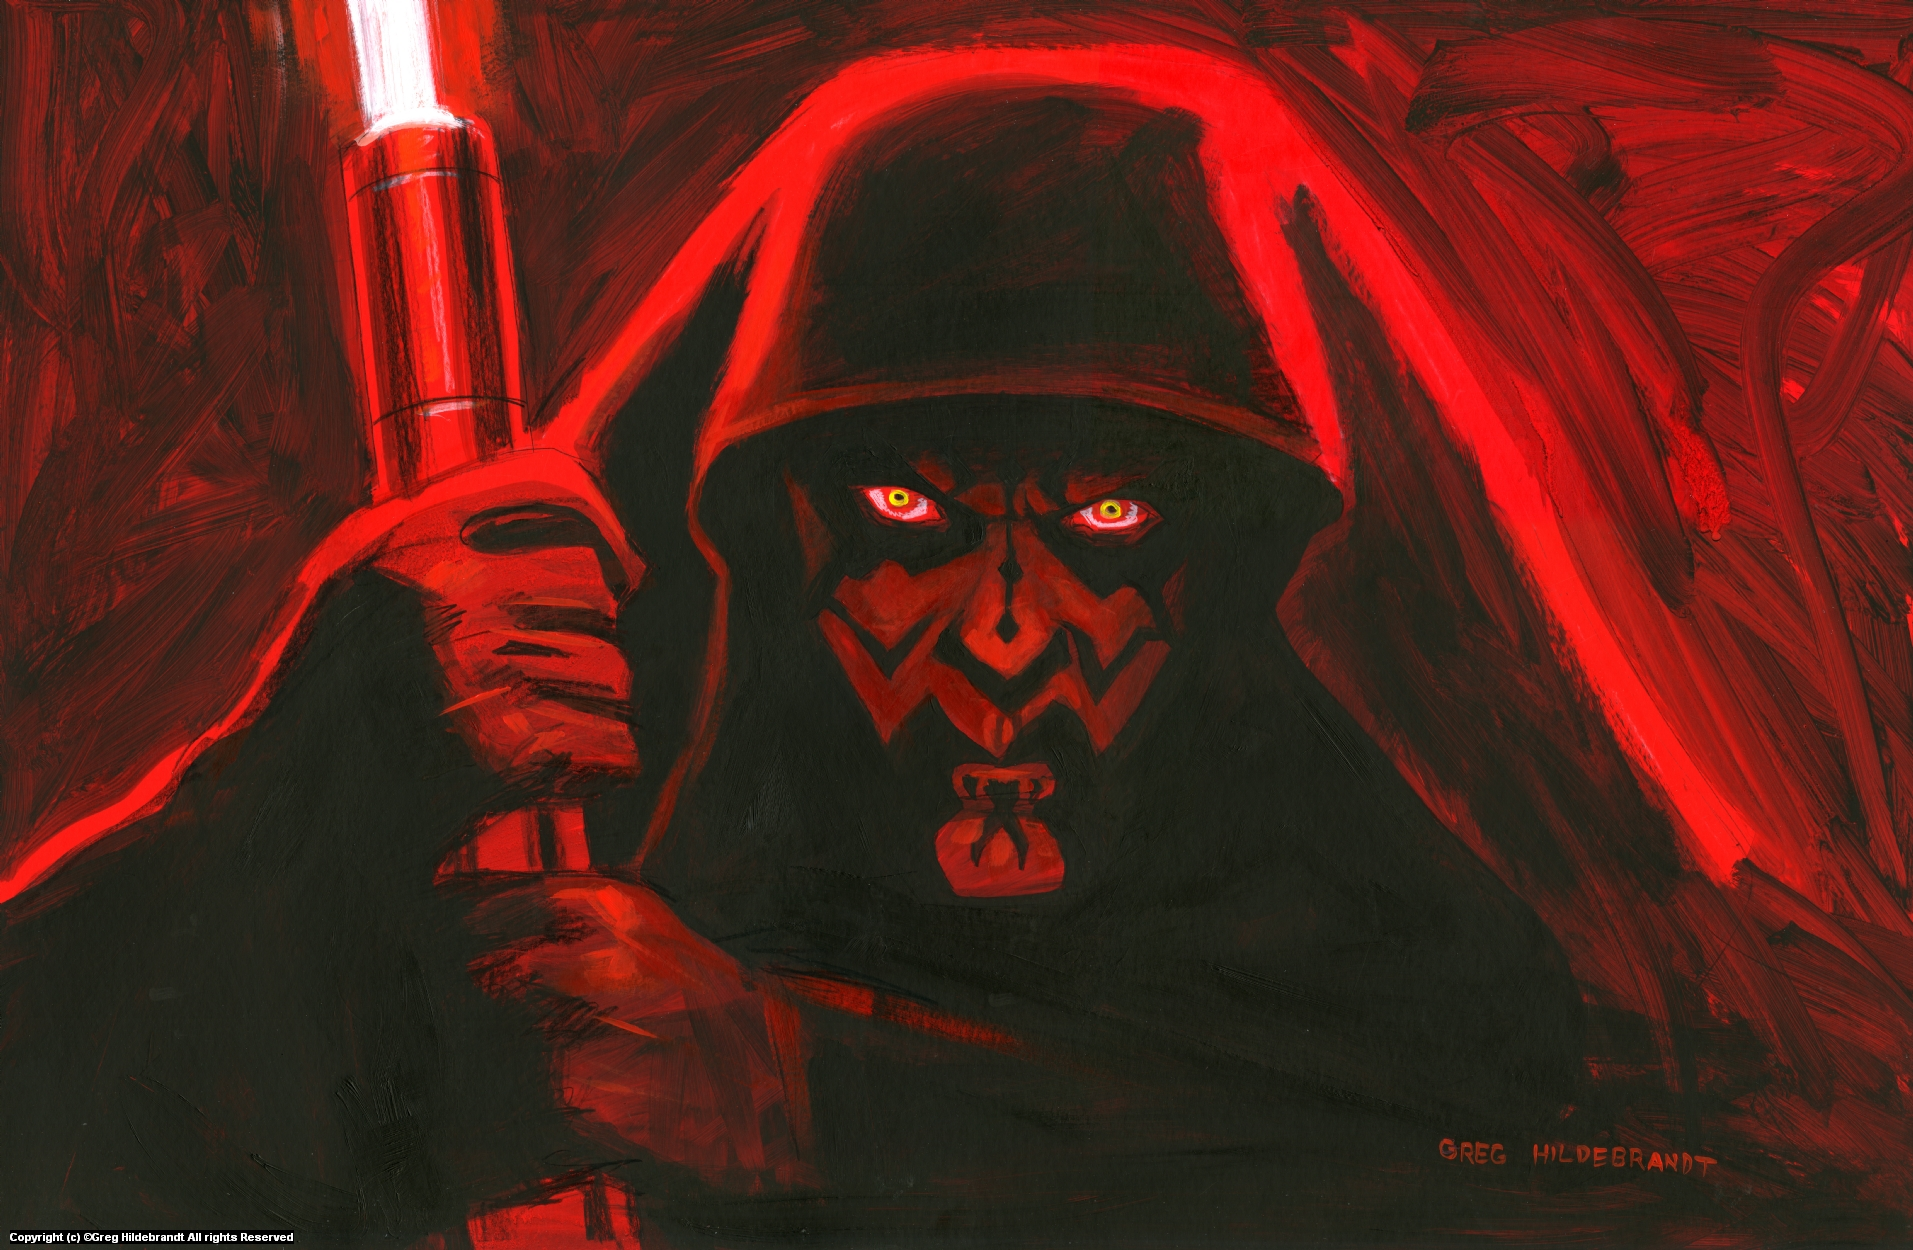 Darth Maul - Version 1 Artwork by Greg Hildebrandt